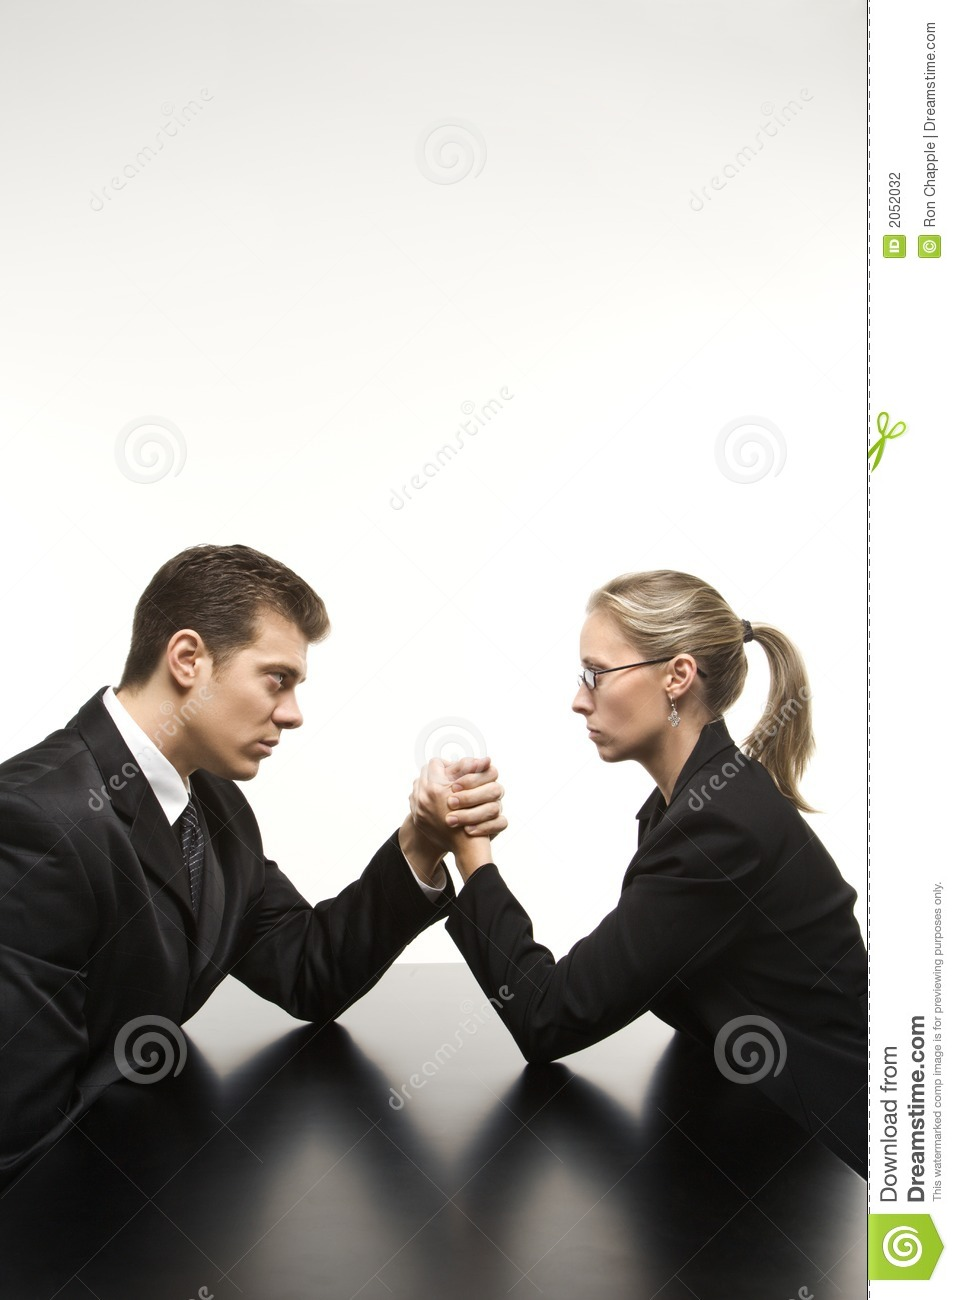 Man And Woman Arm Wrestling Stock Photography Image 2052032